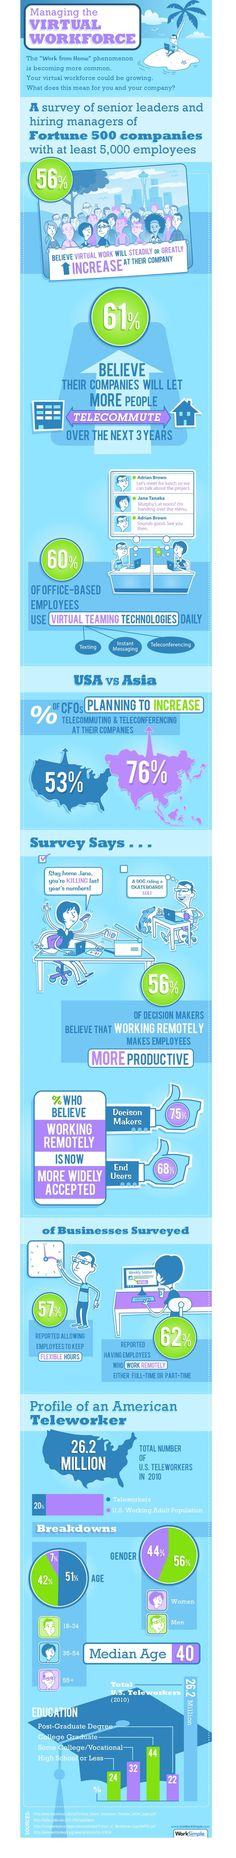 60% of office-based employees use virtual teaming technologies daily -SG